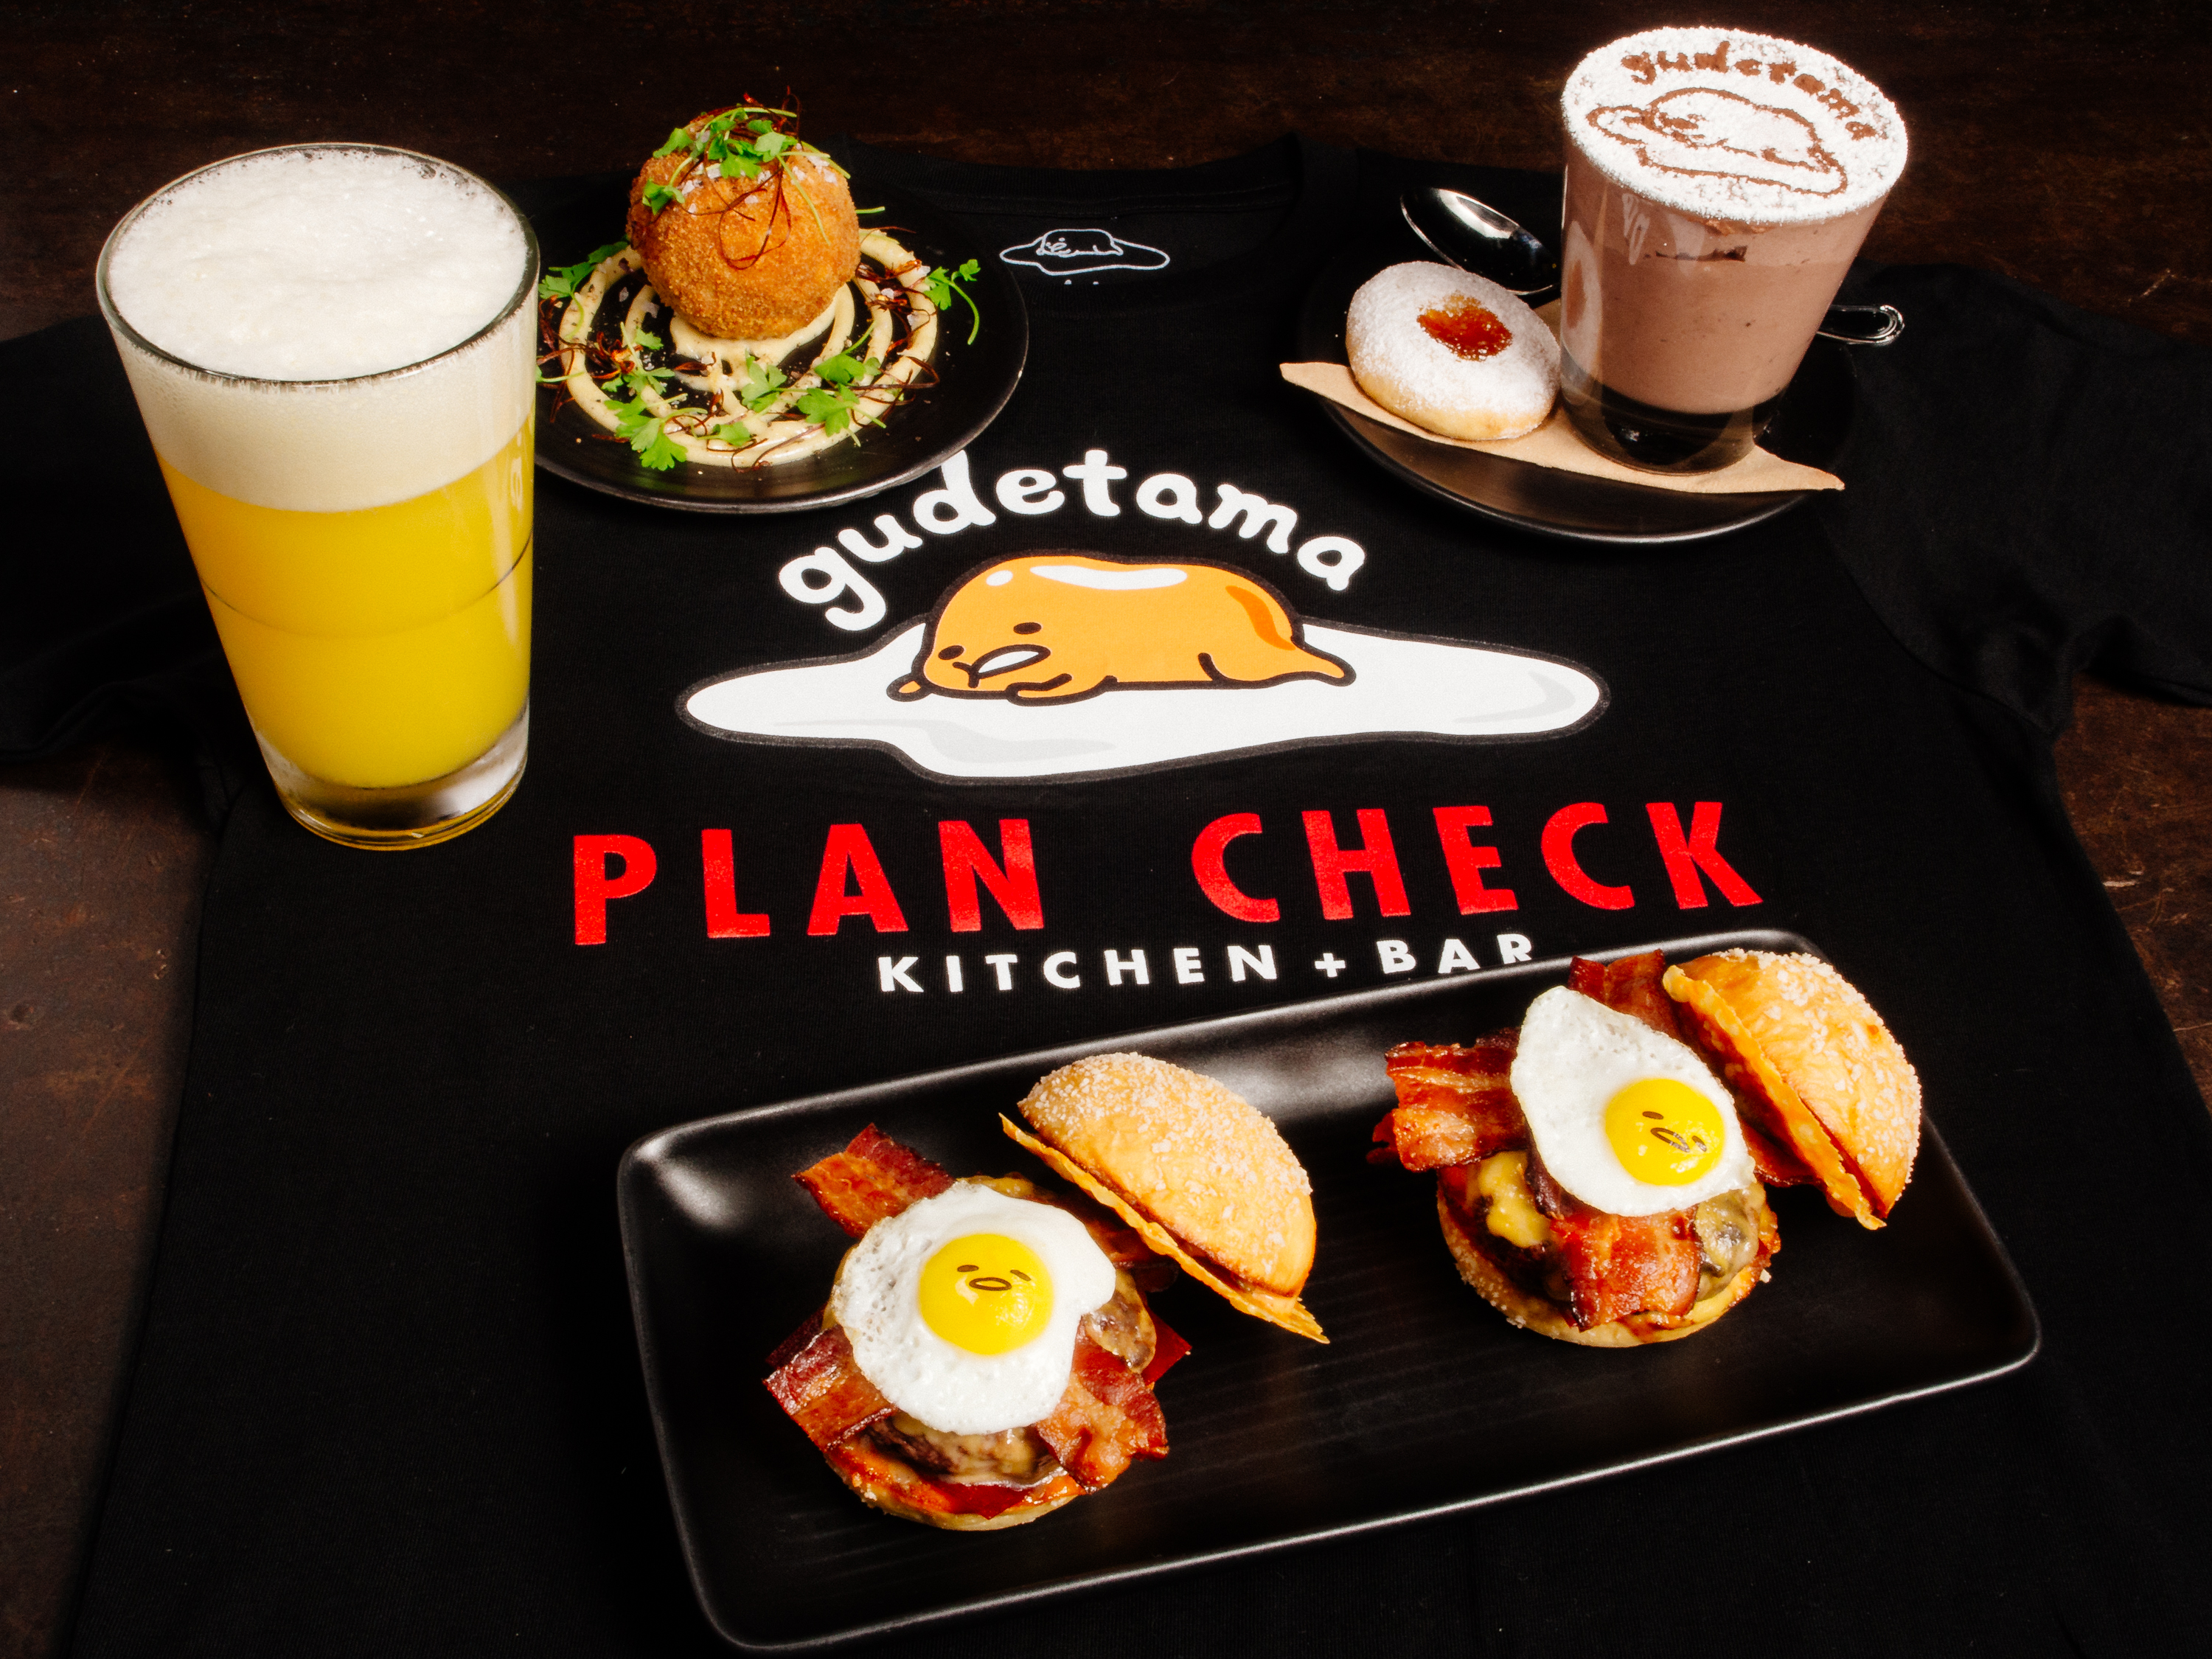 Gudetama × Plan Check